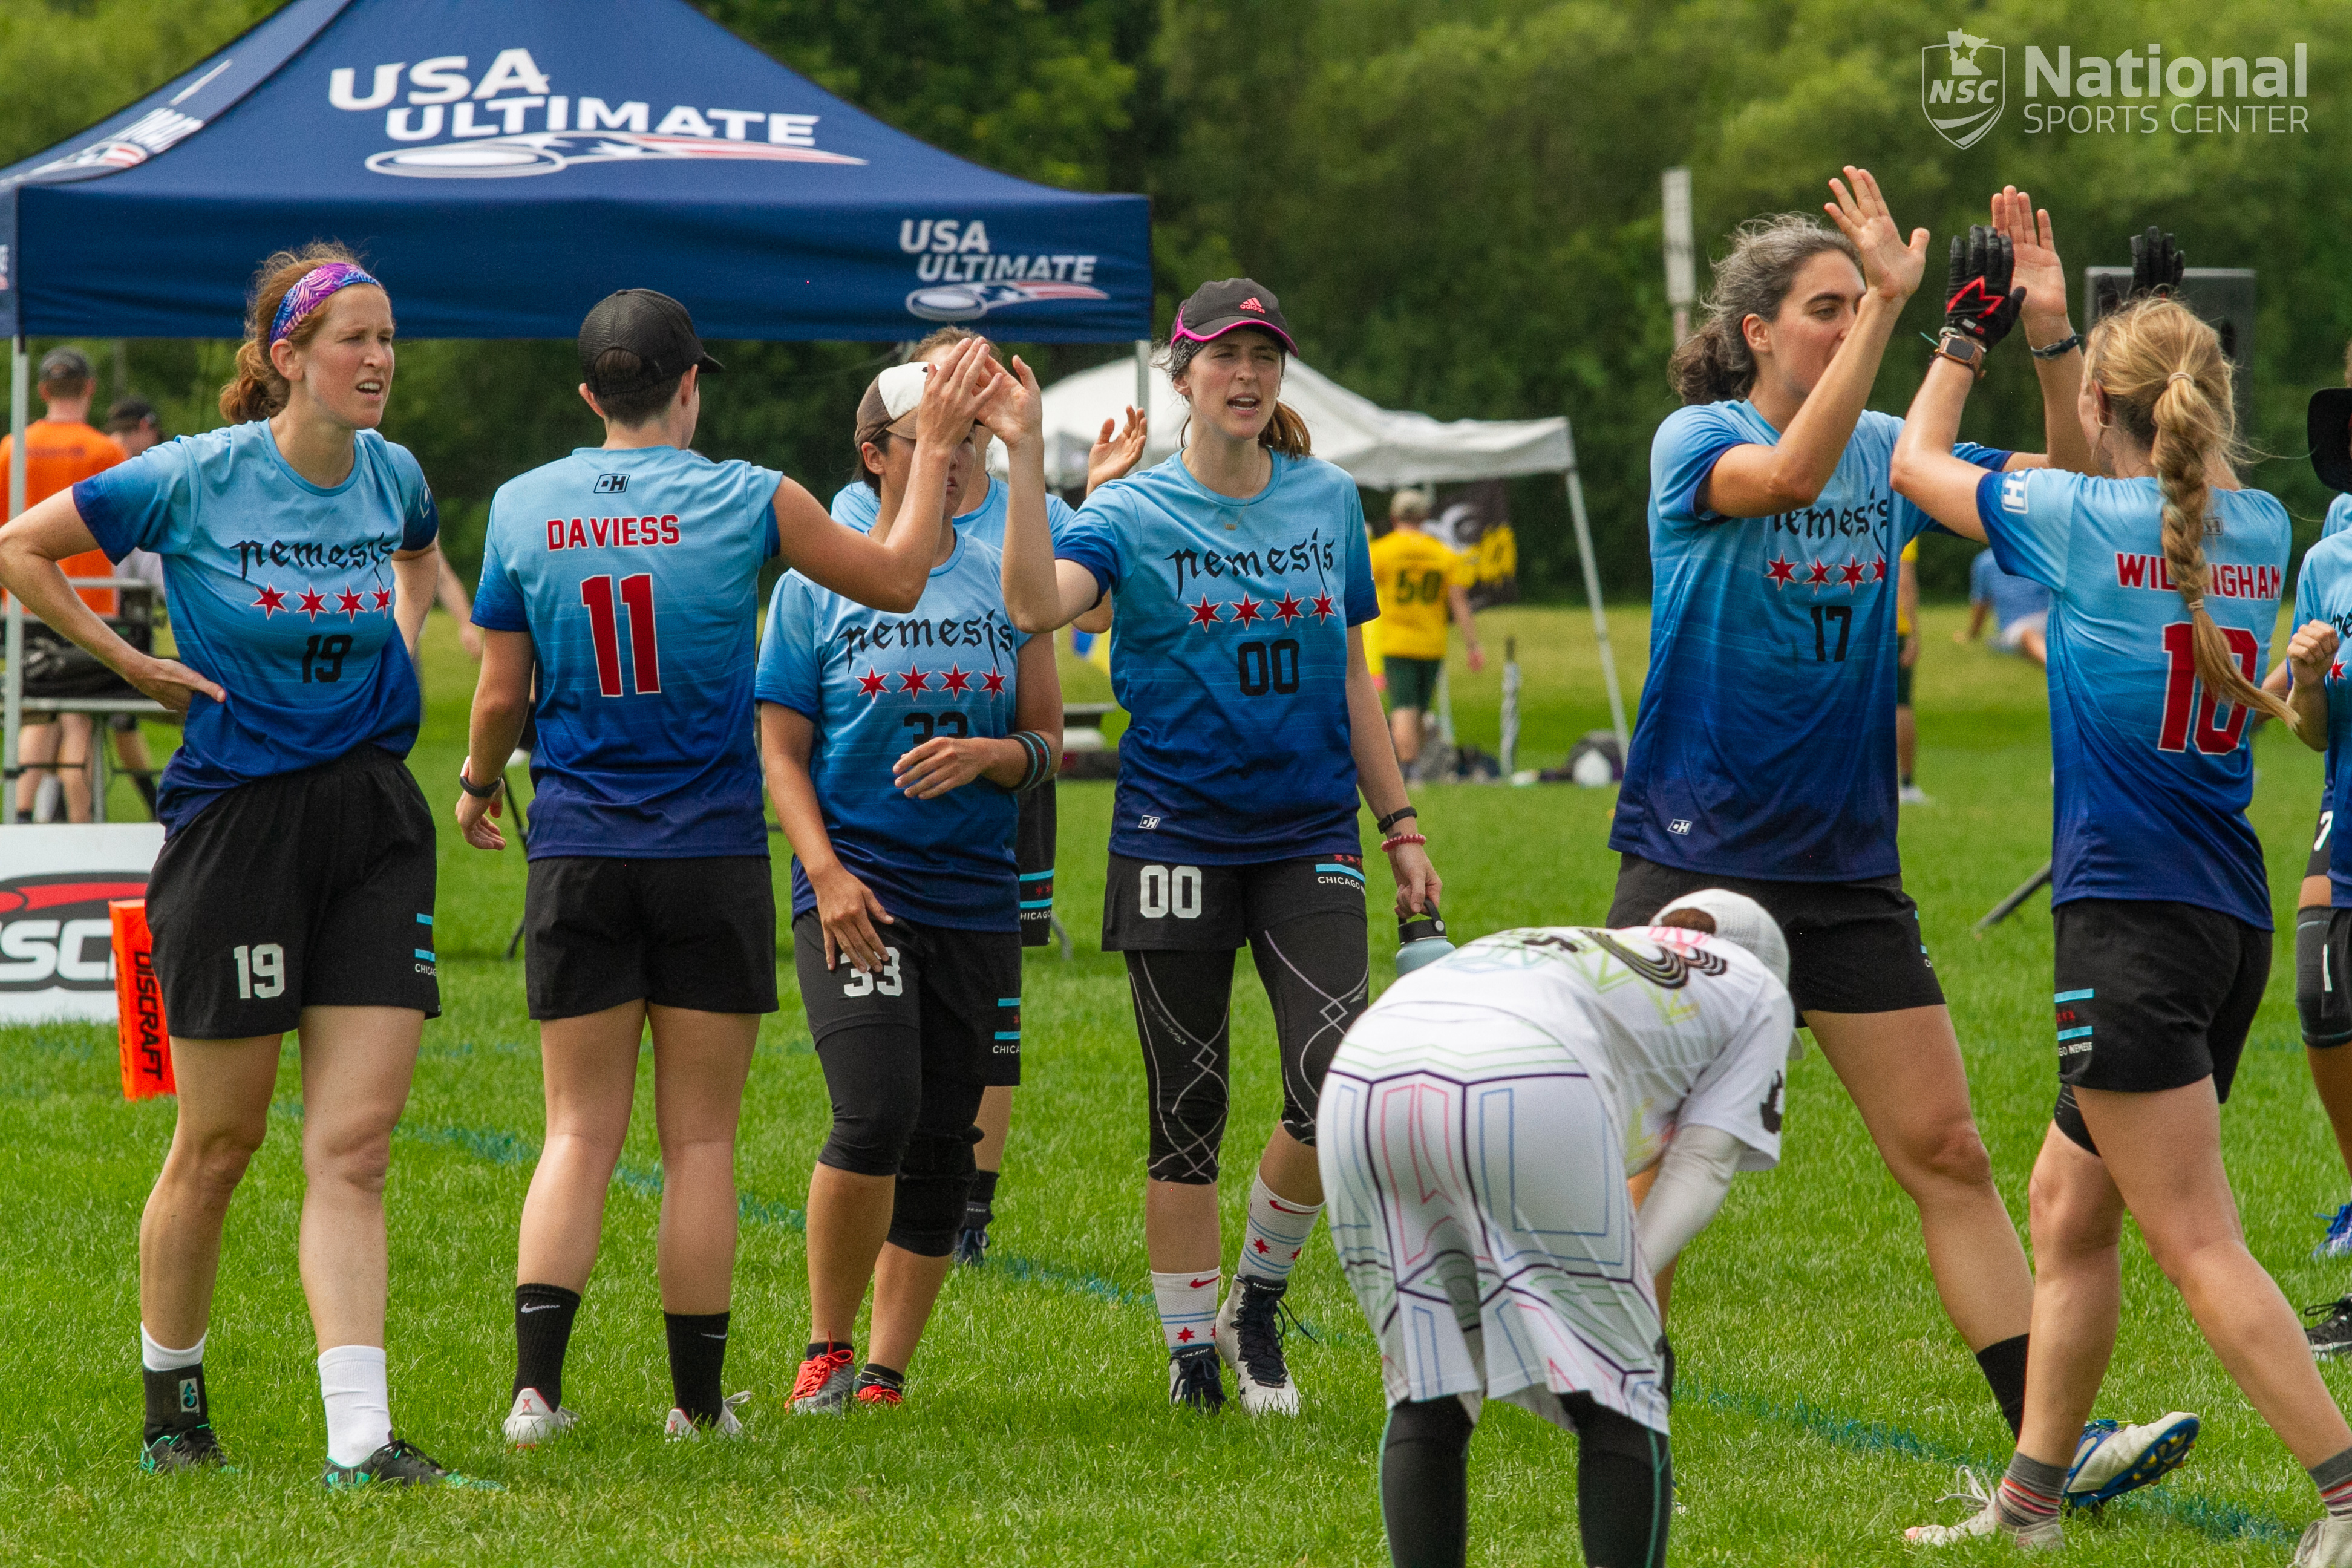 2019USAUltimate6